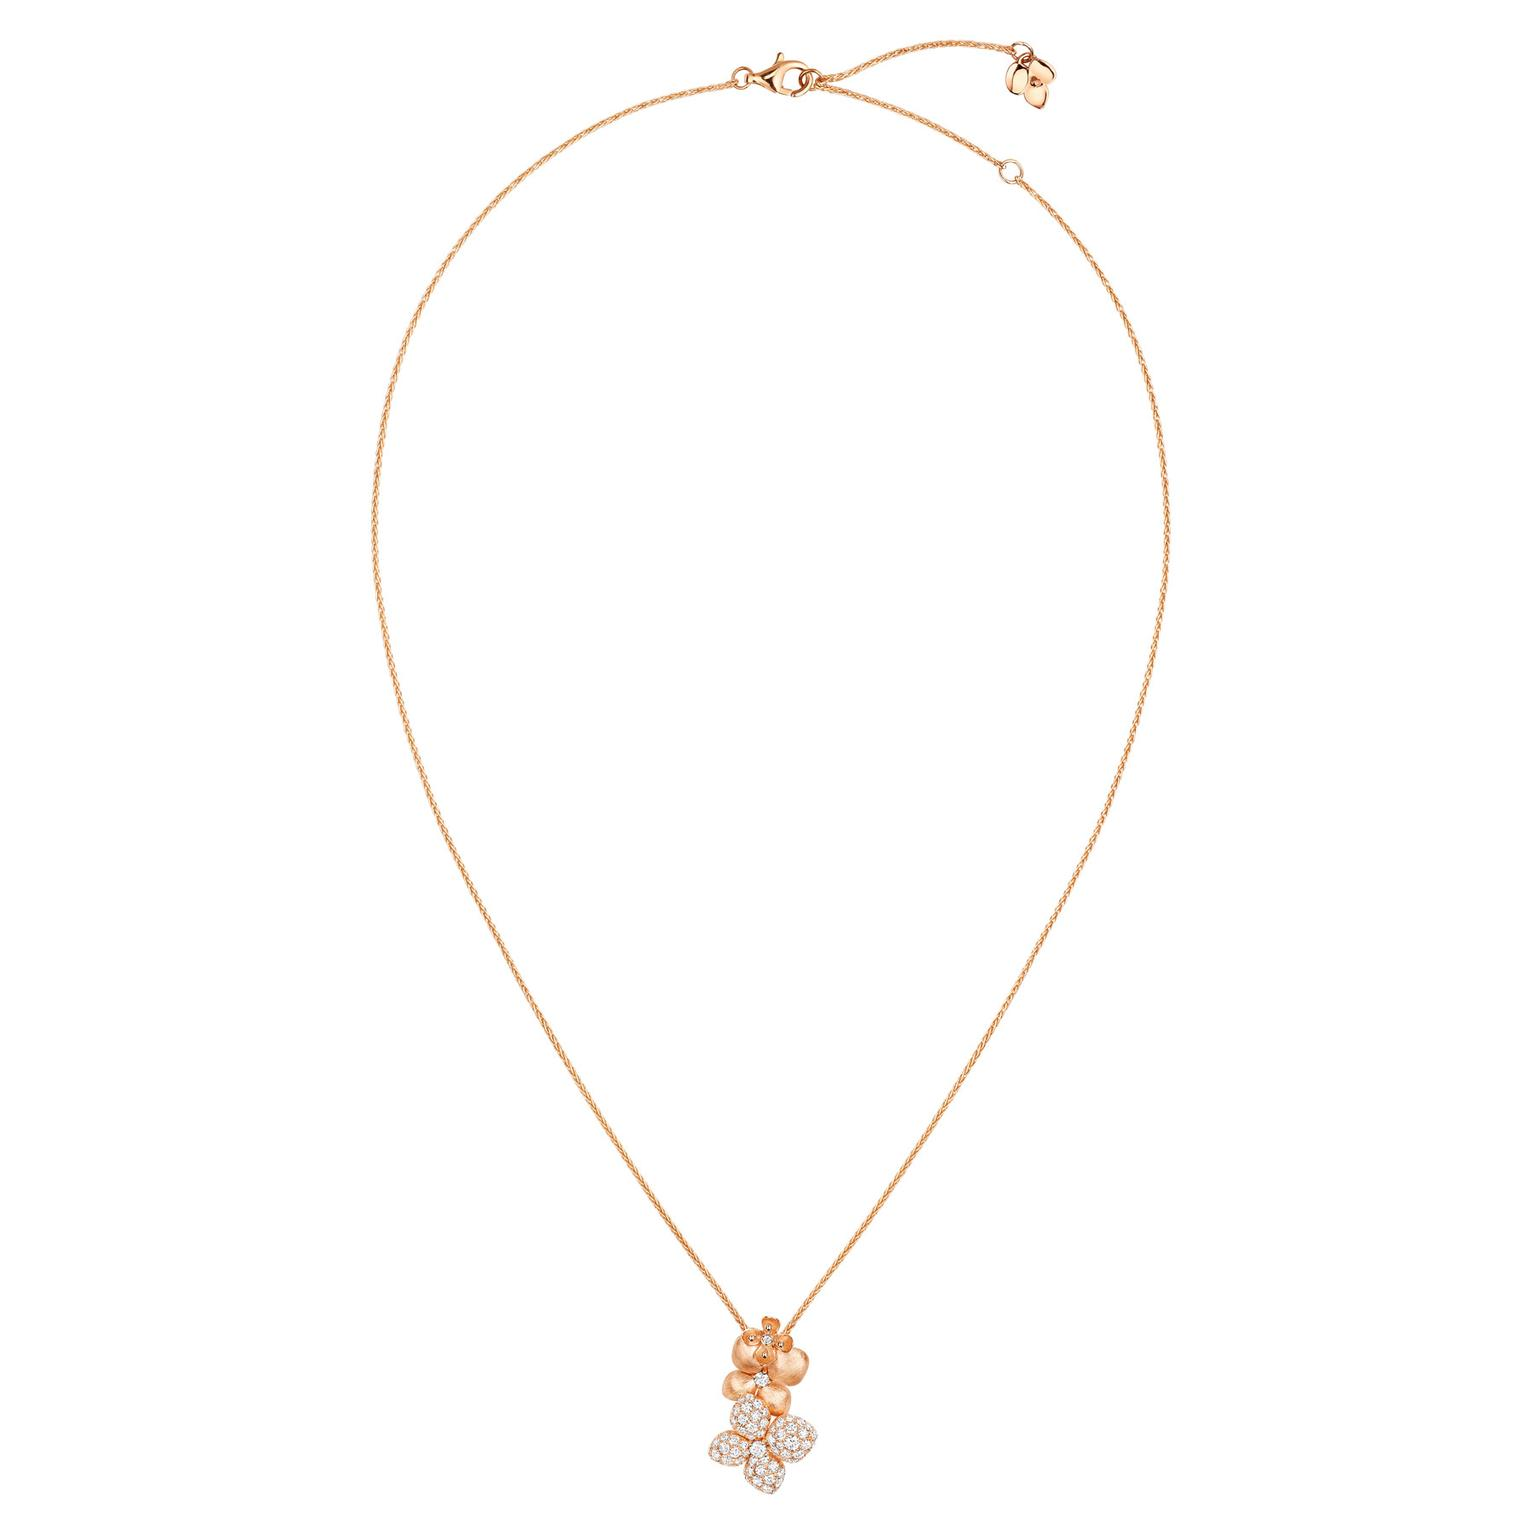 Chaumet Hortensia Astres d'or brushed rose gold and diamond pendant